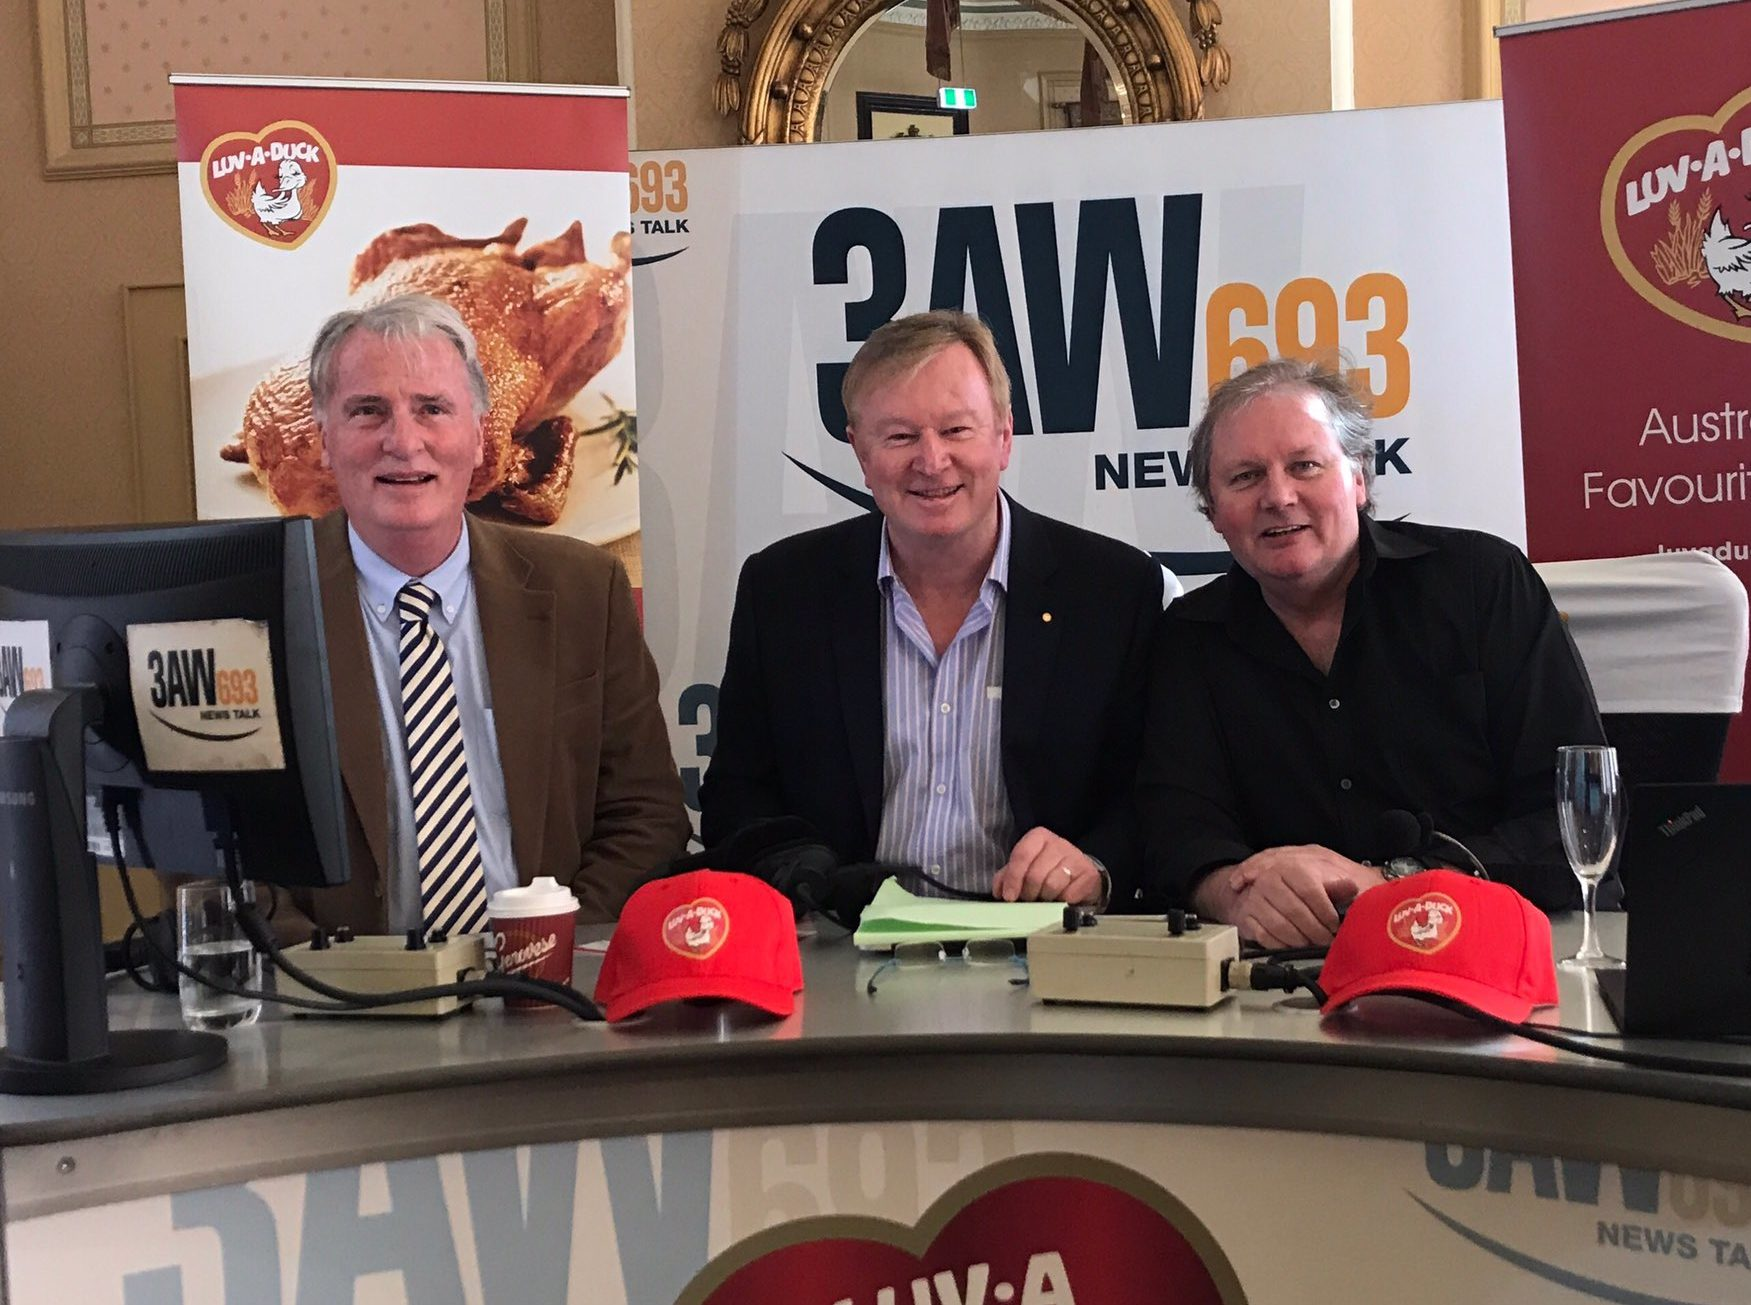 Article image for 3AW Afternoons with Denis Walter – LIVE from Craig's Royal Hotel for Luv-a-Duck!